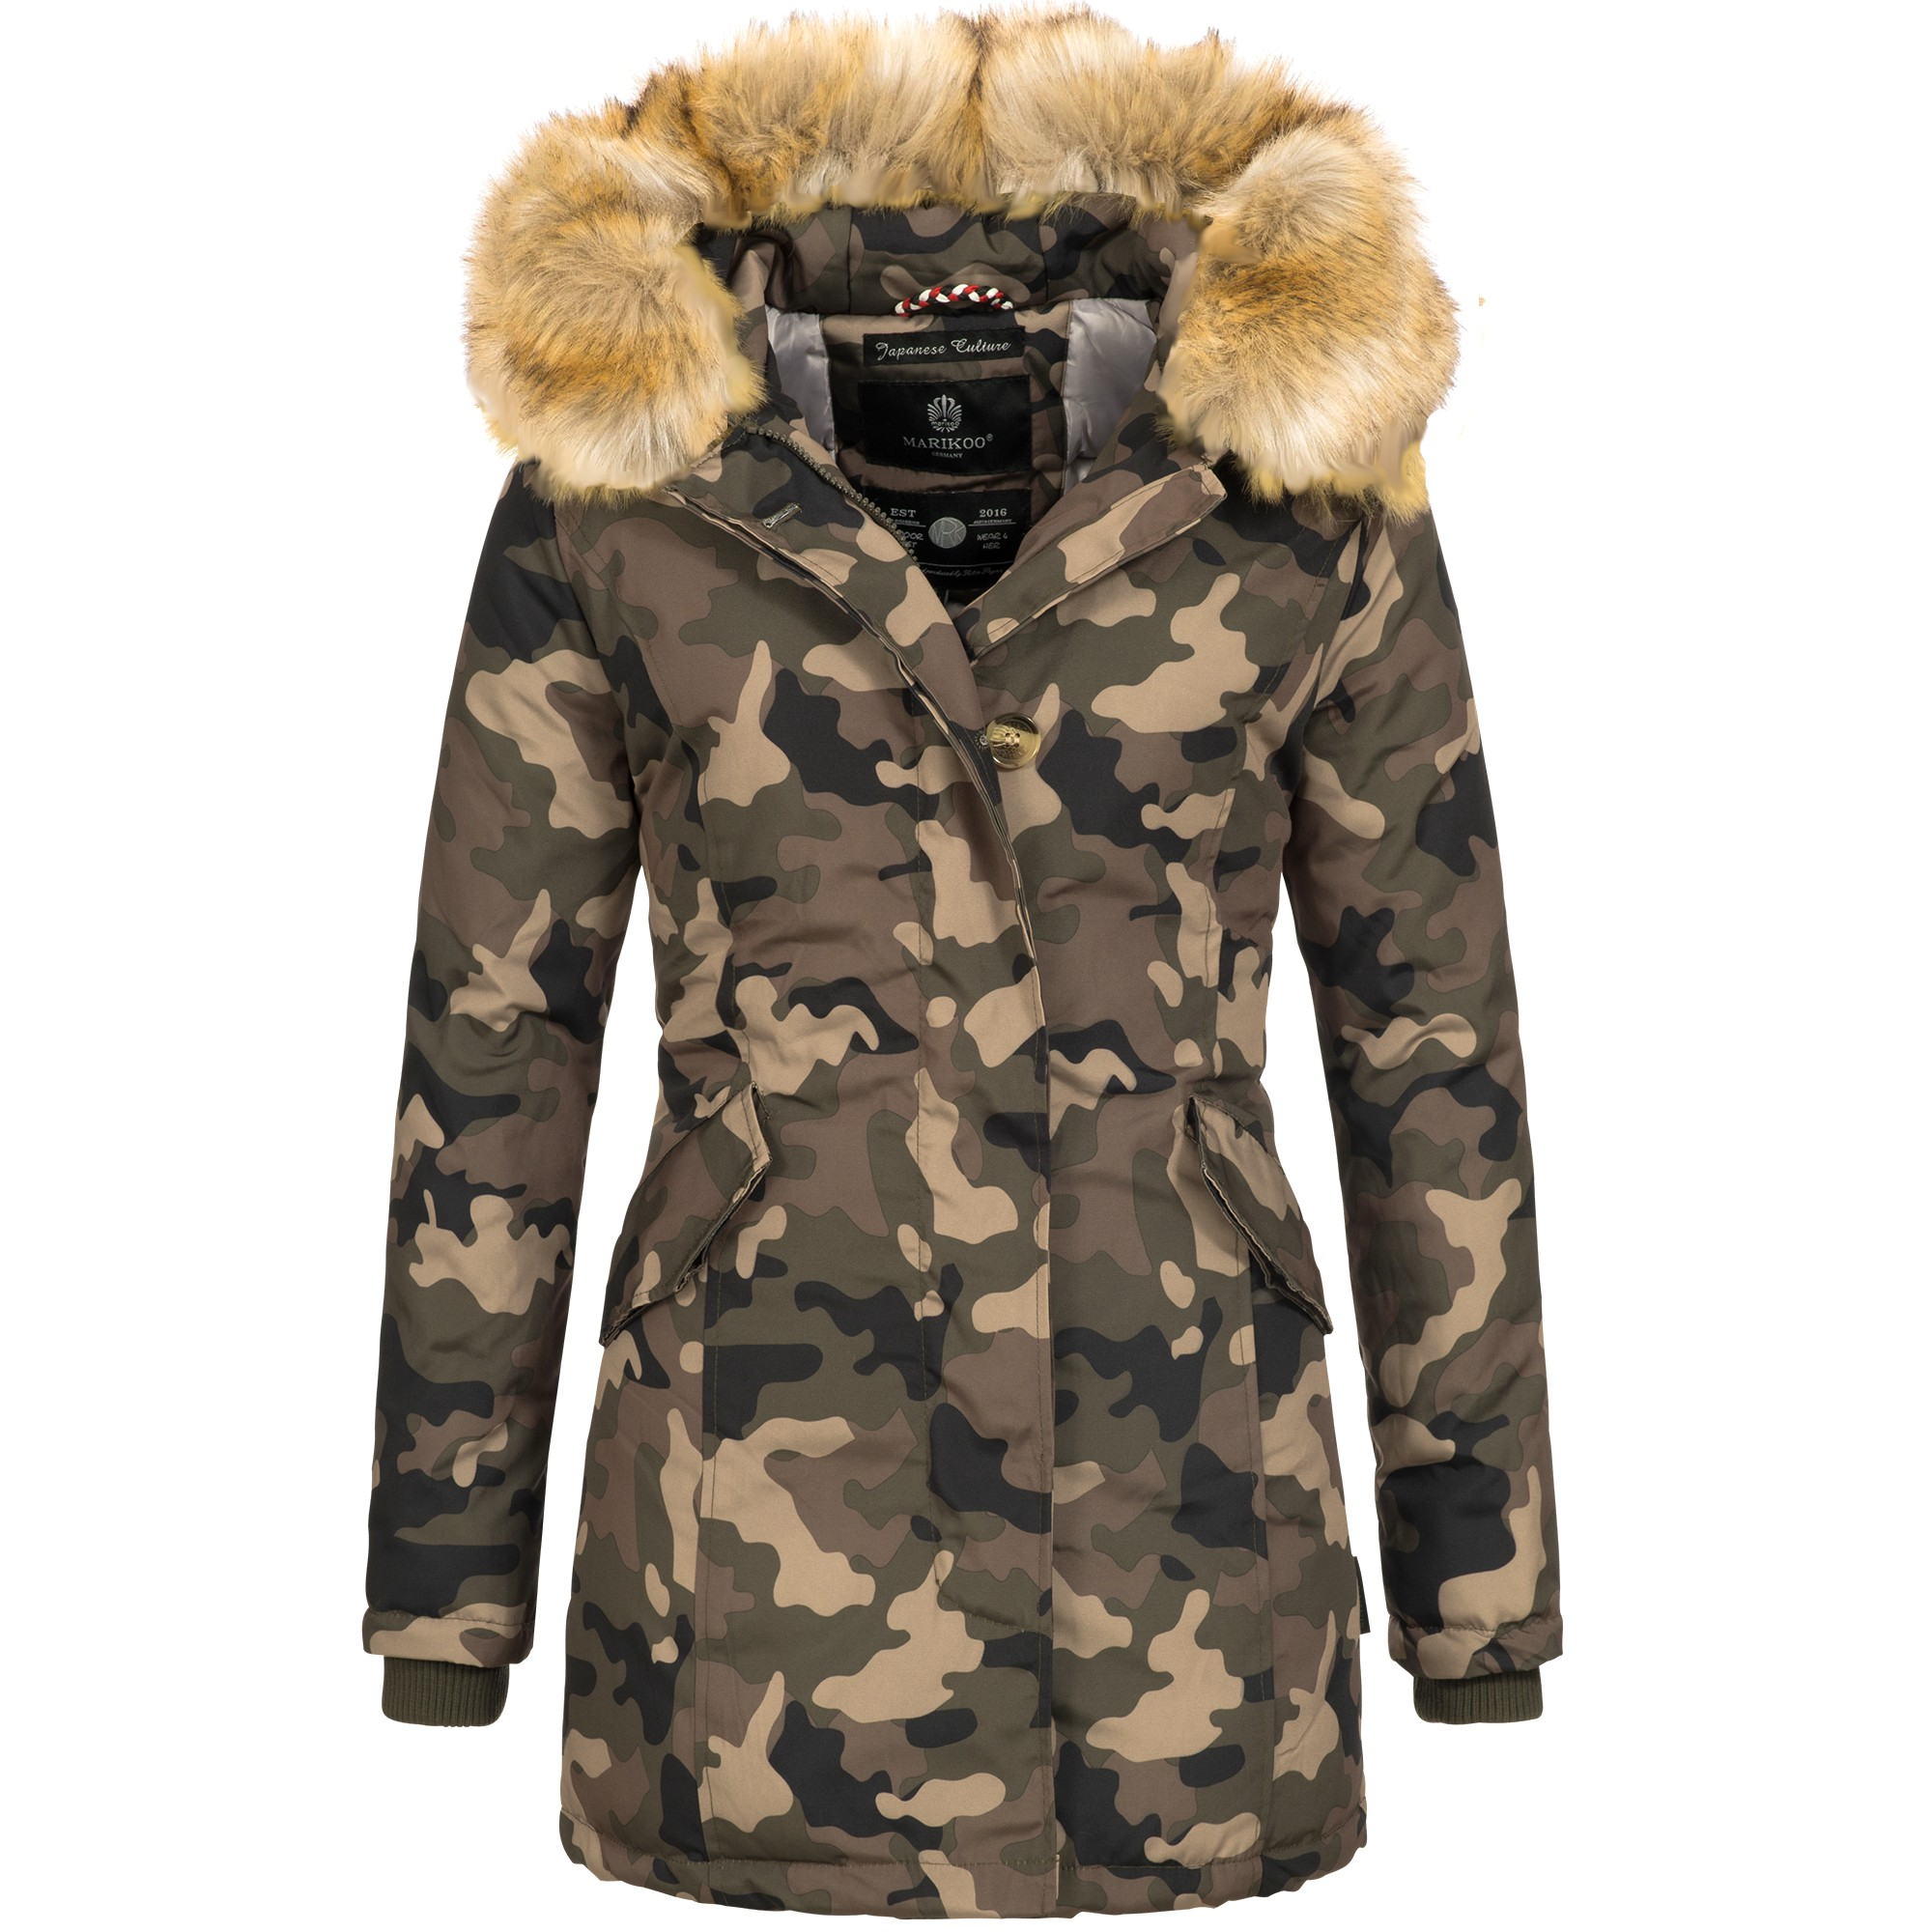 marikoo karmaa damen jacke parka mantel warme winterjacke luxus xxl kunstpelz ebay. Black Bedroom Furniture Sets. Home Design Ideas